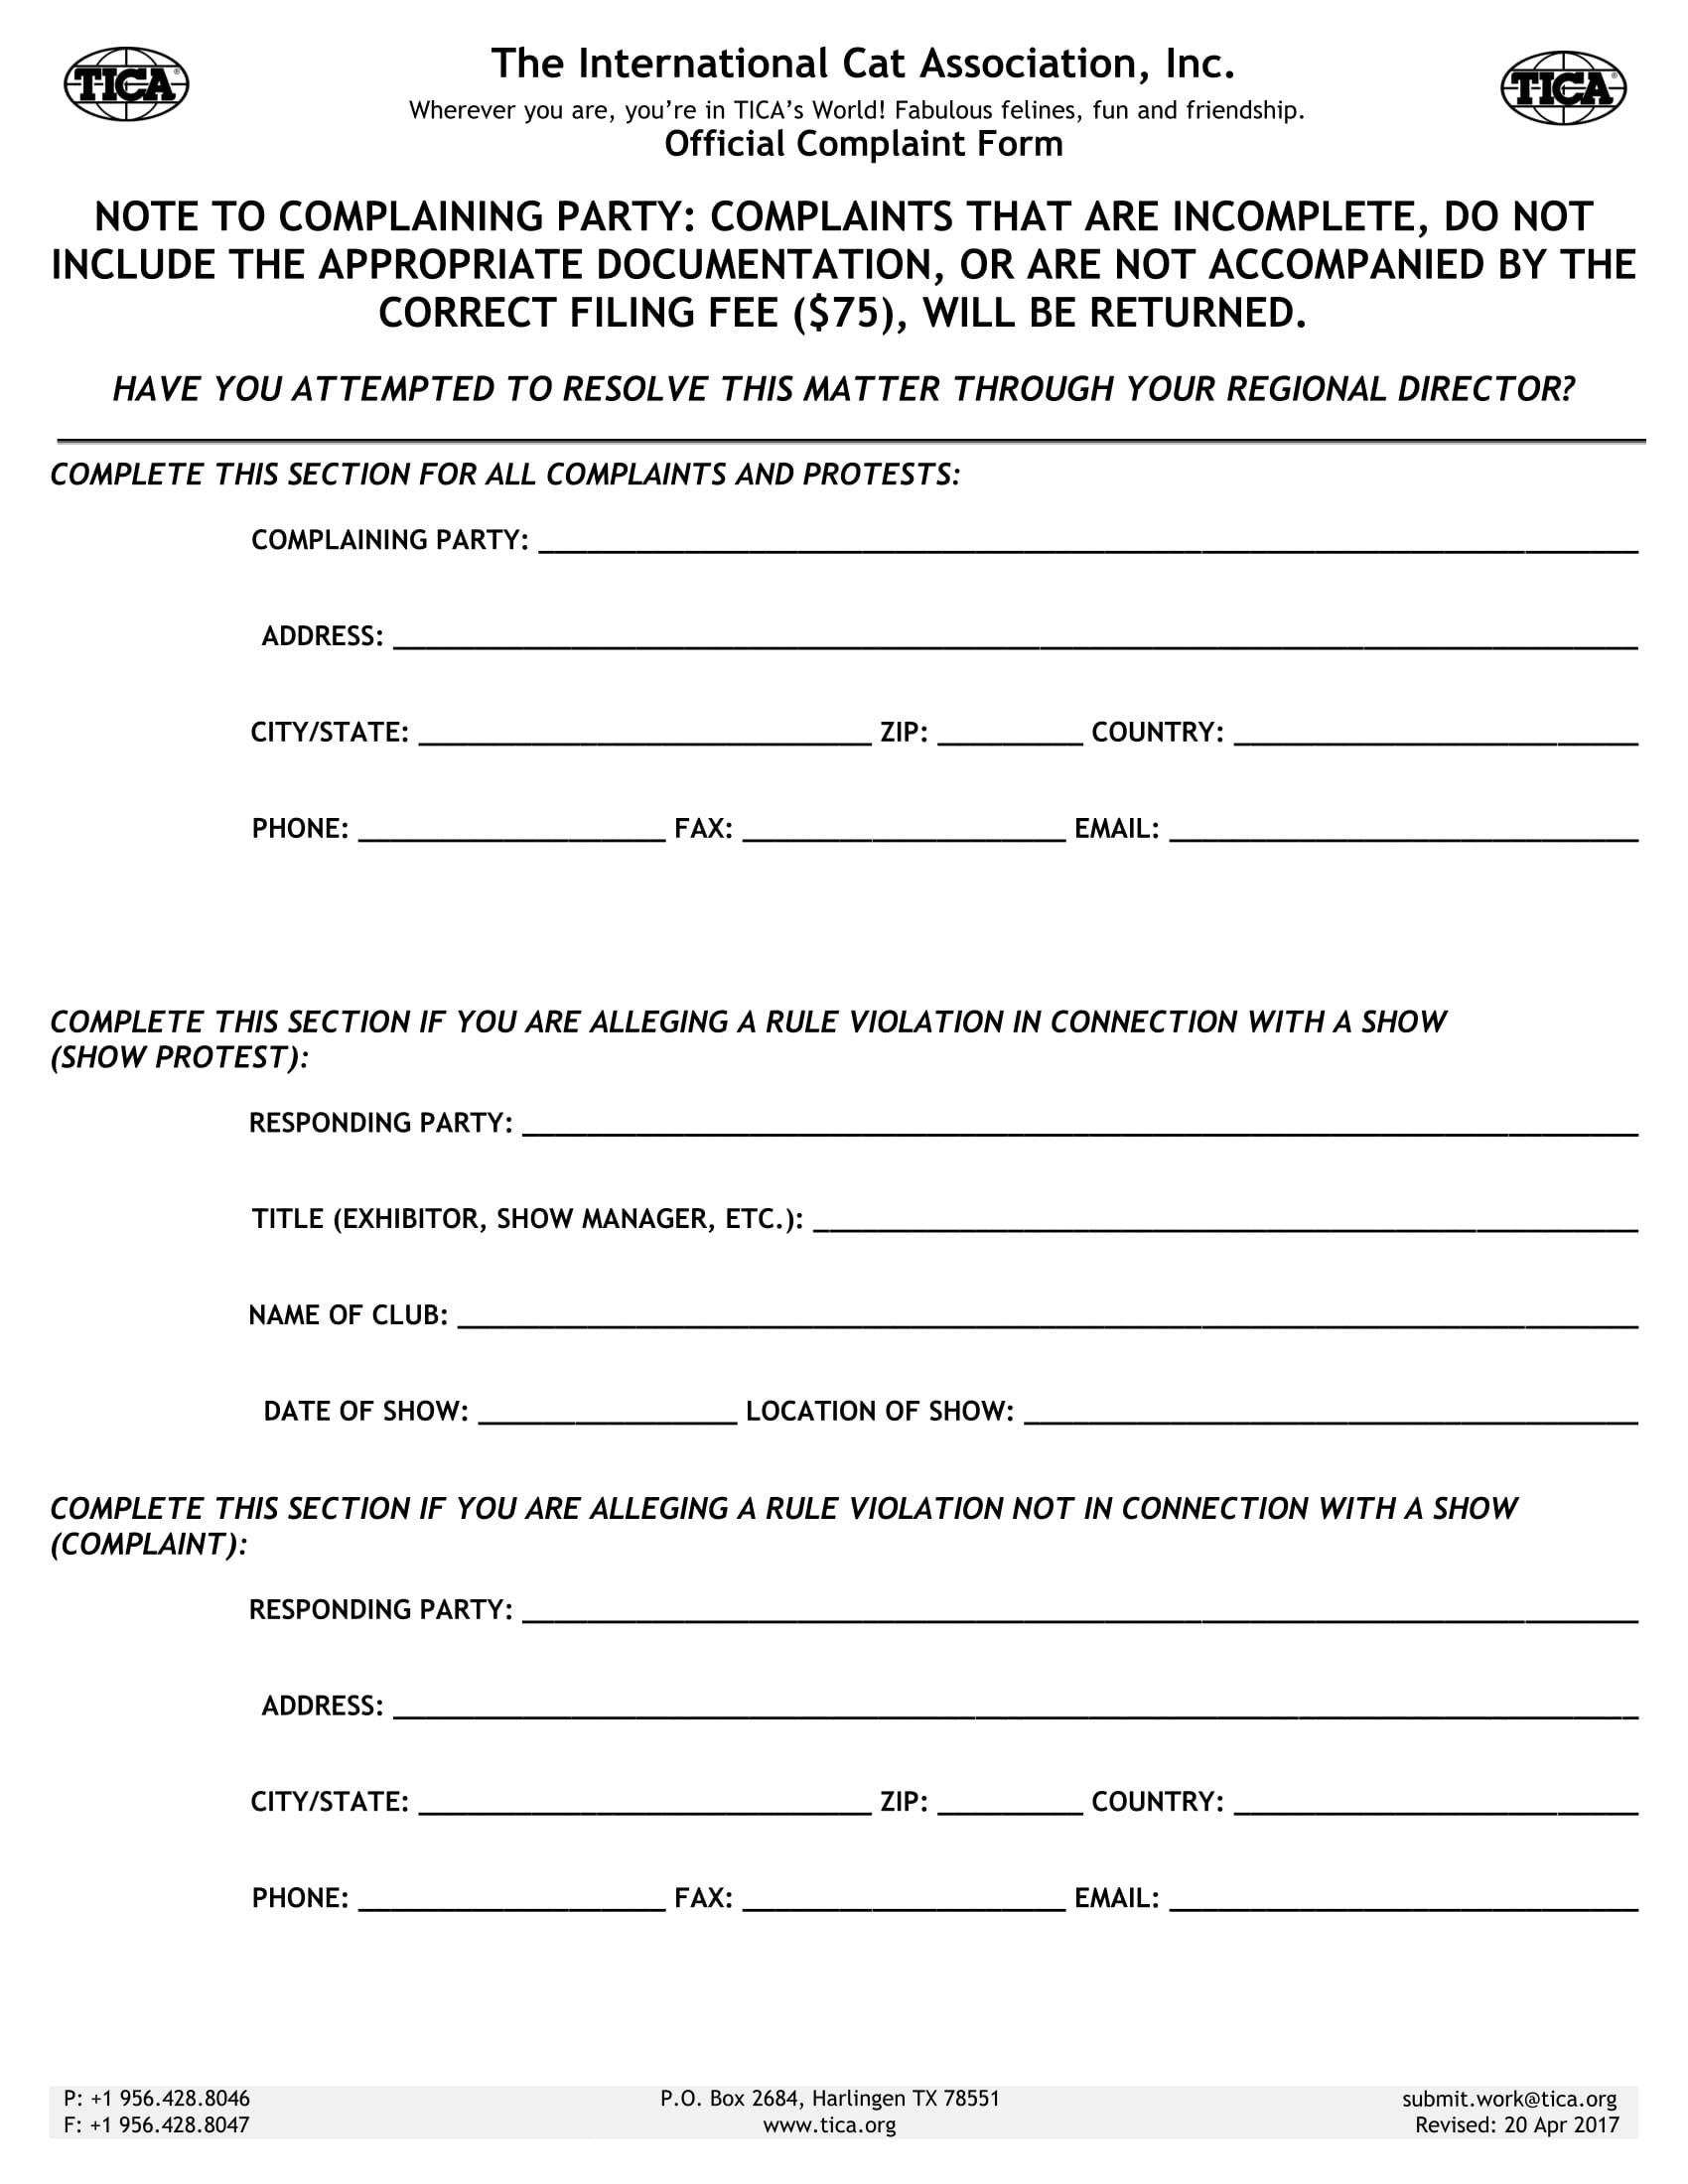 official complaint form 1